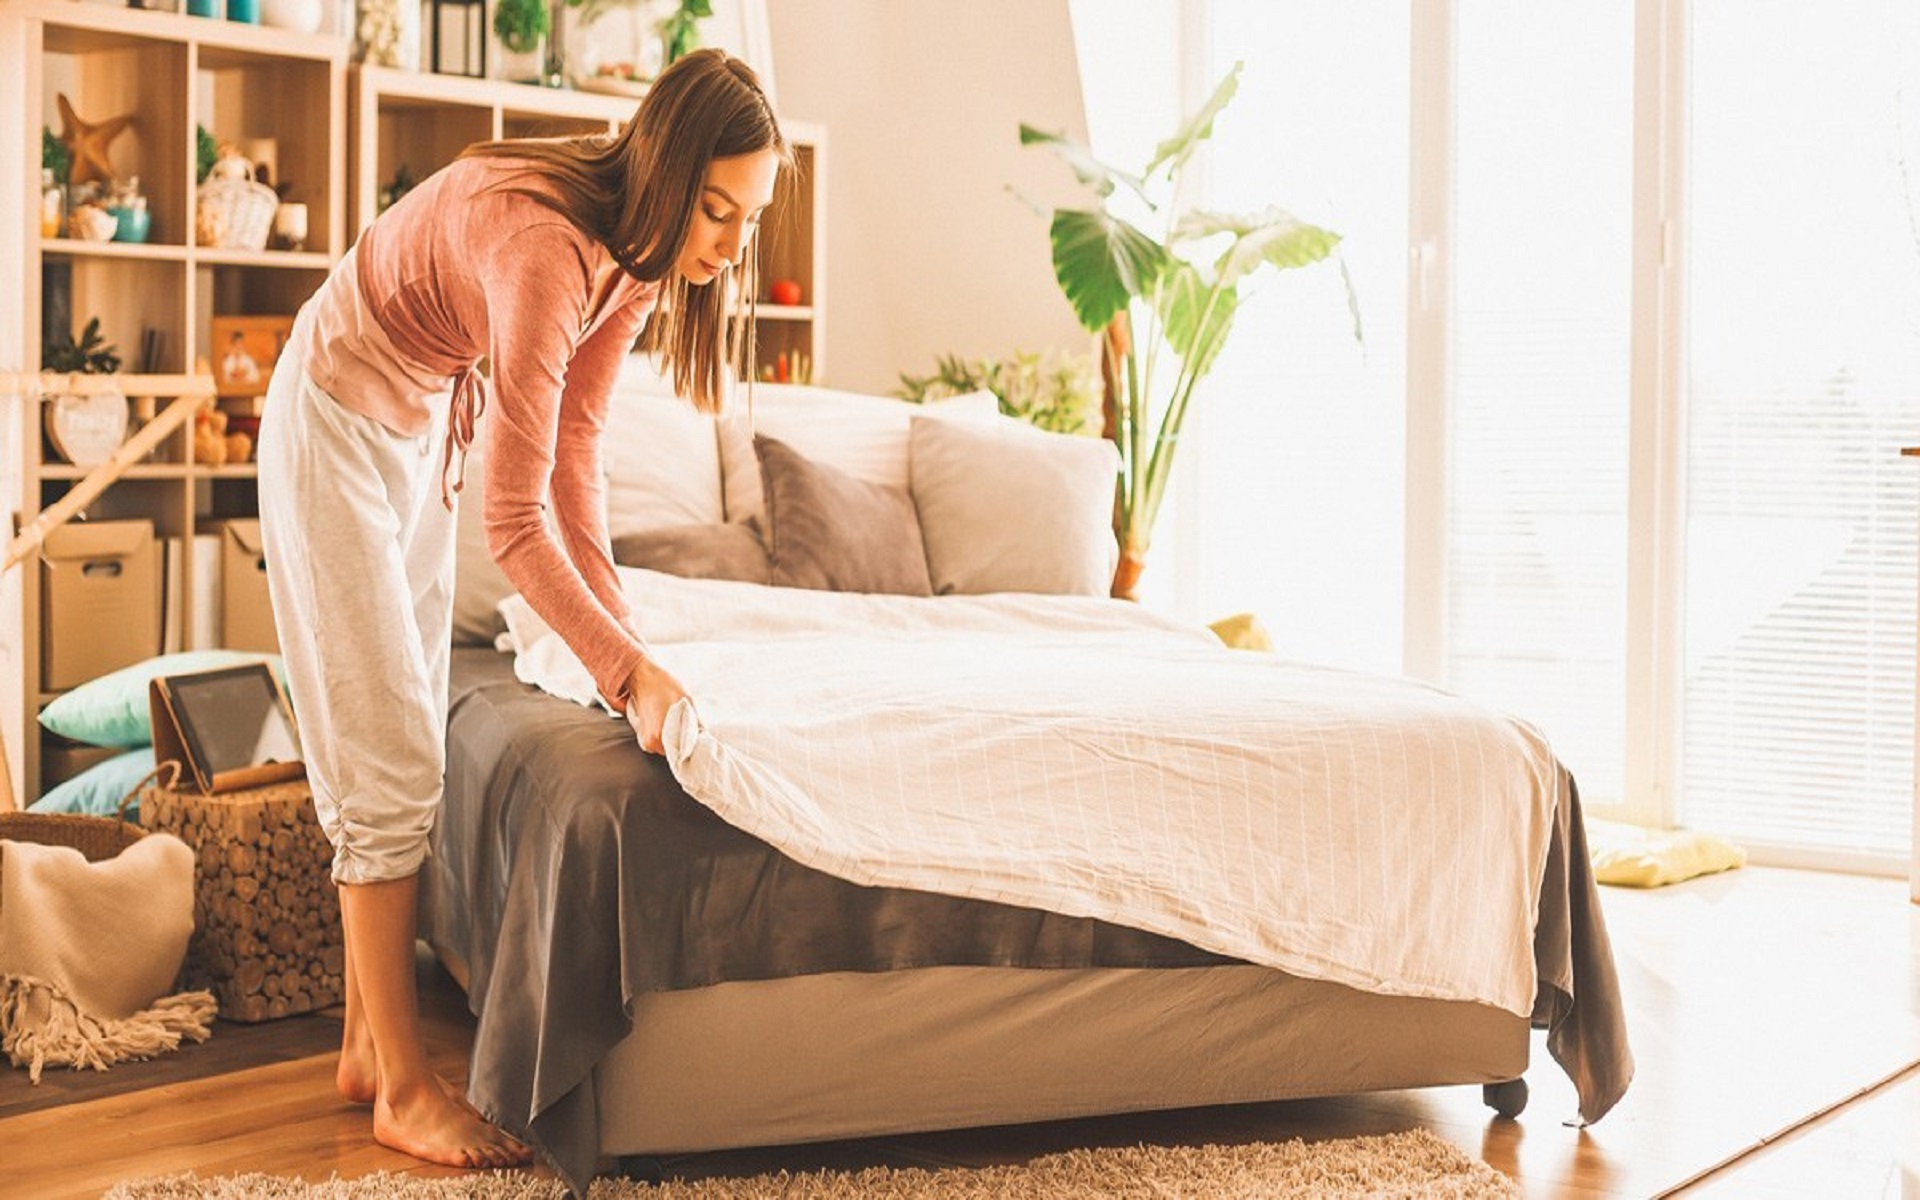 6 Amazing Benefits Of Making Your Bed